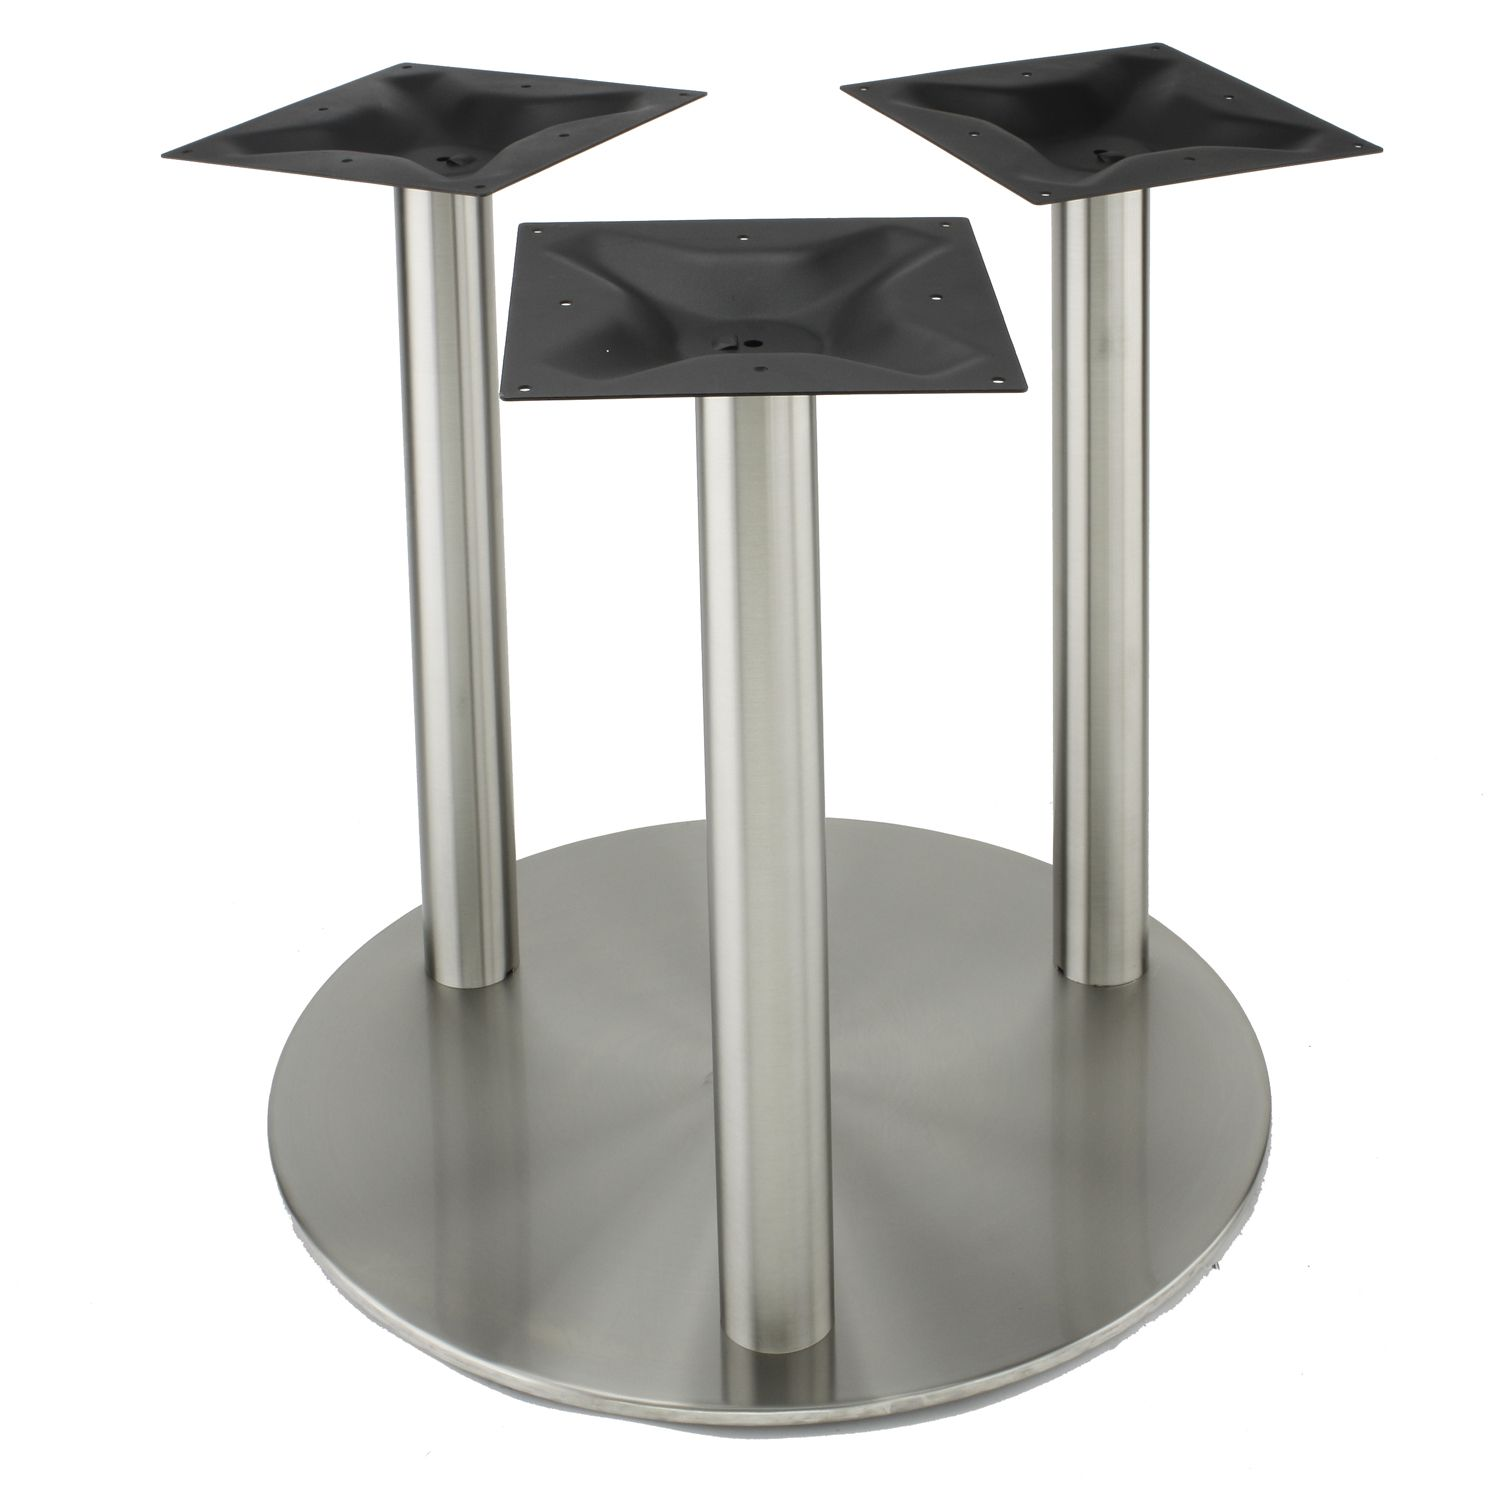 RFL750X3 Stainless Steel Table Base